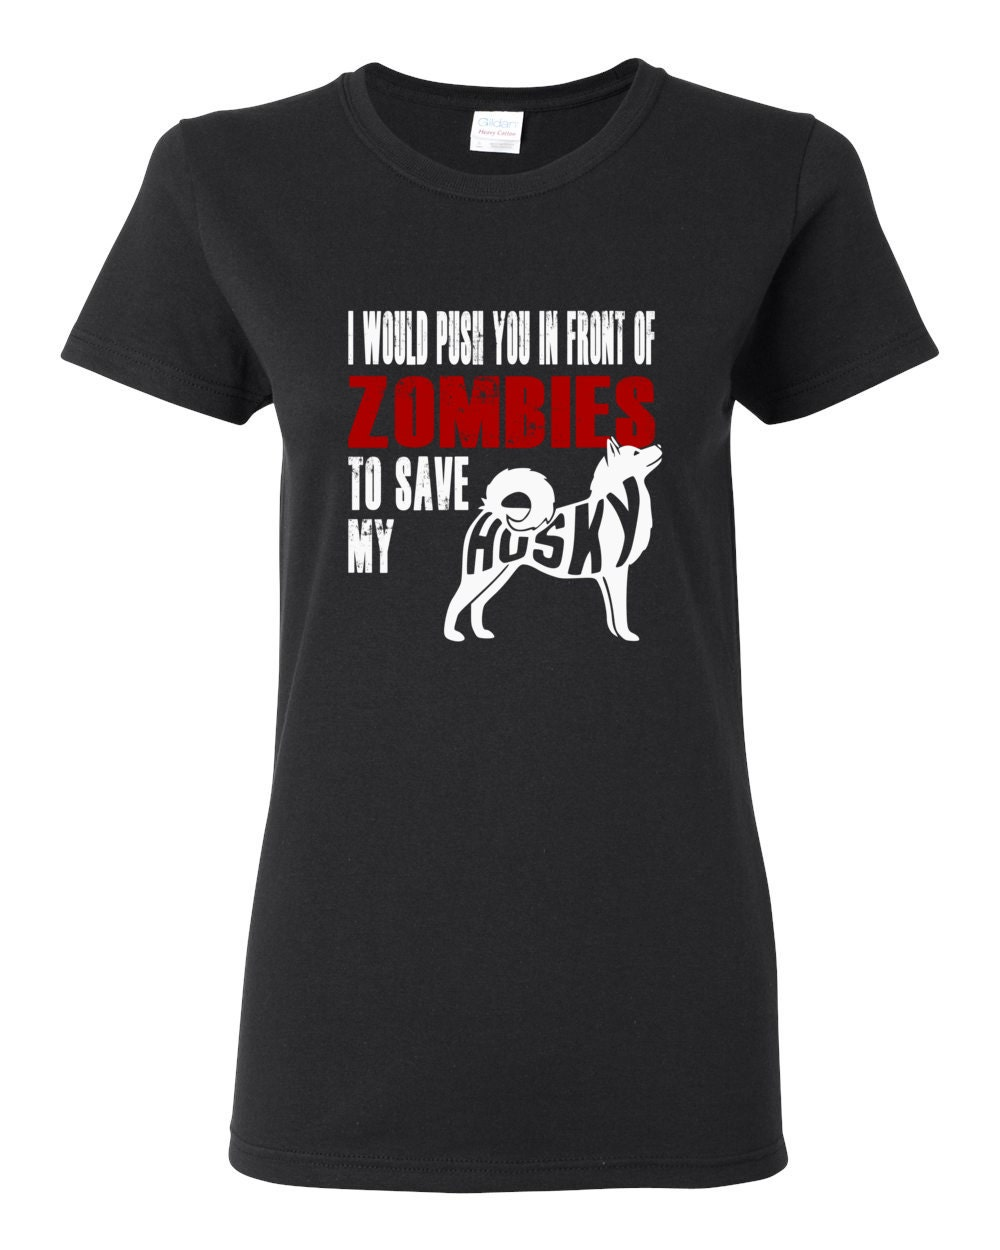 Husky Womens Shirt - I Would Push You In Front Of Zombies To Save My Husky Womens T-shirt